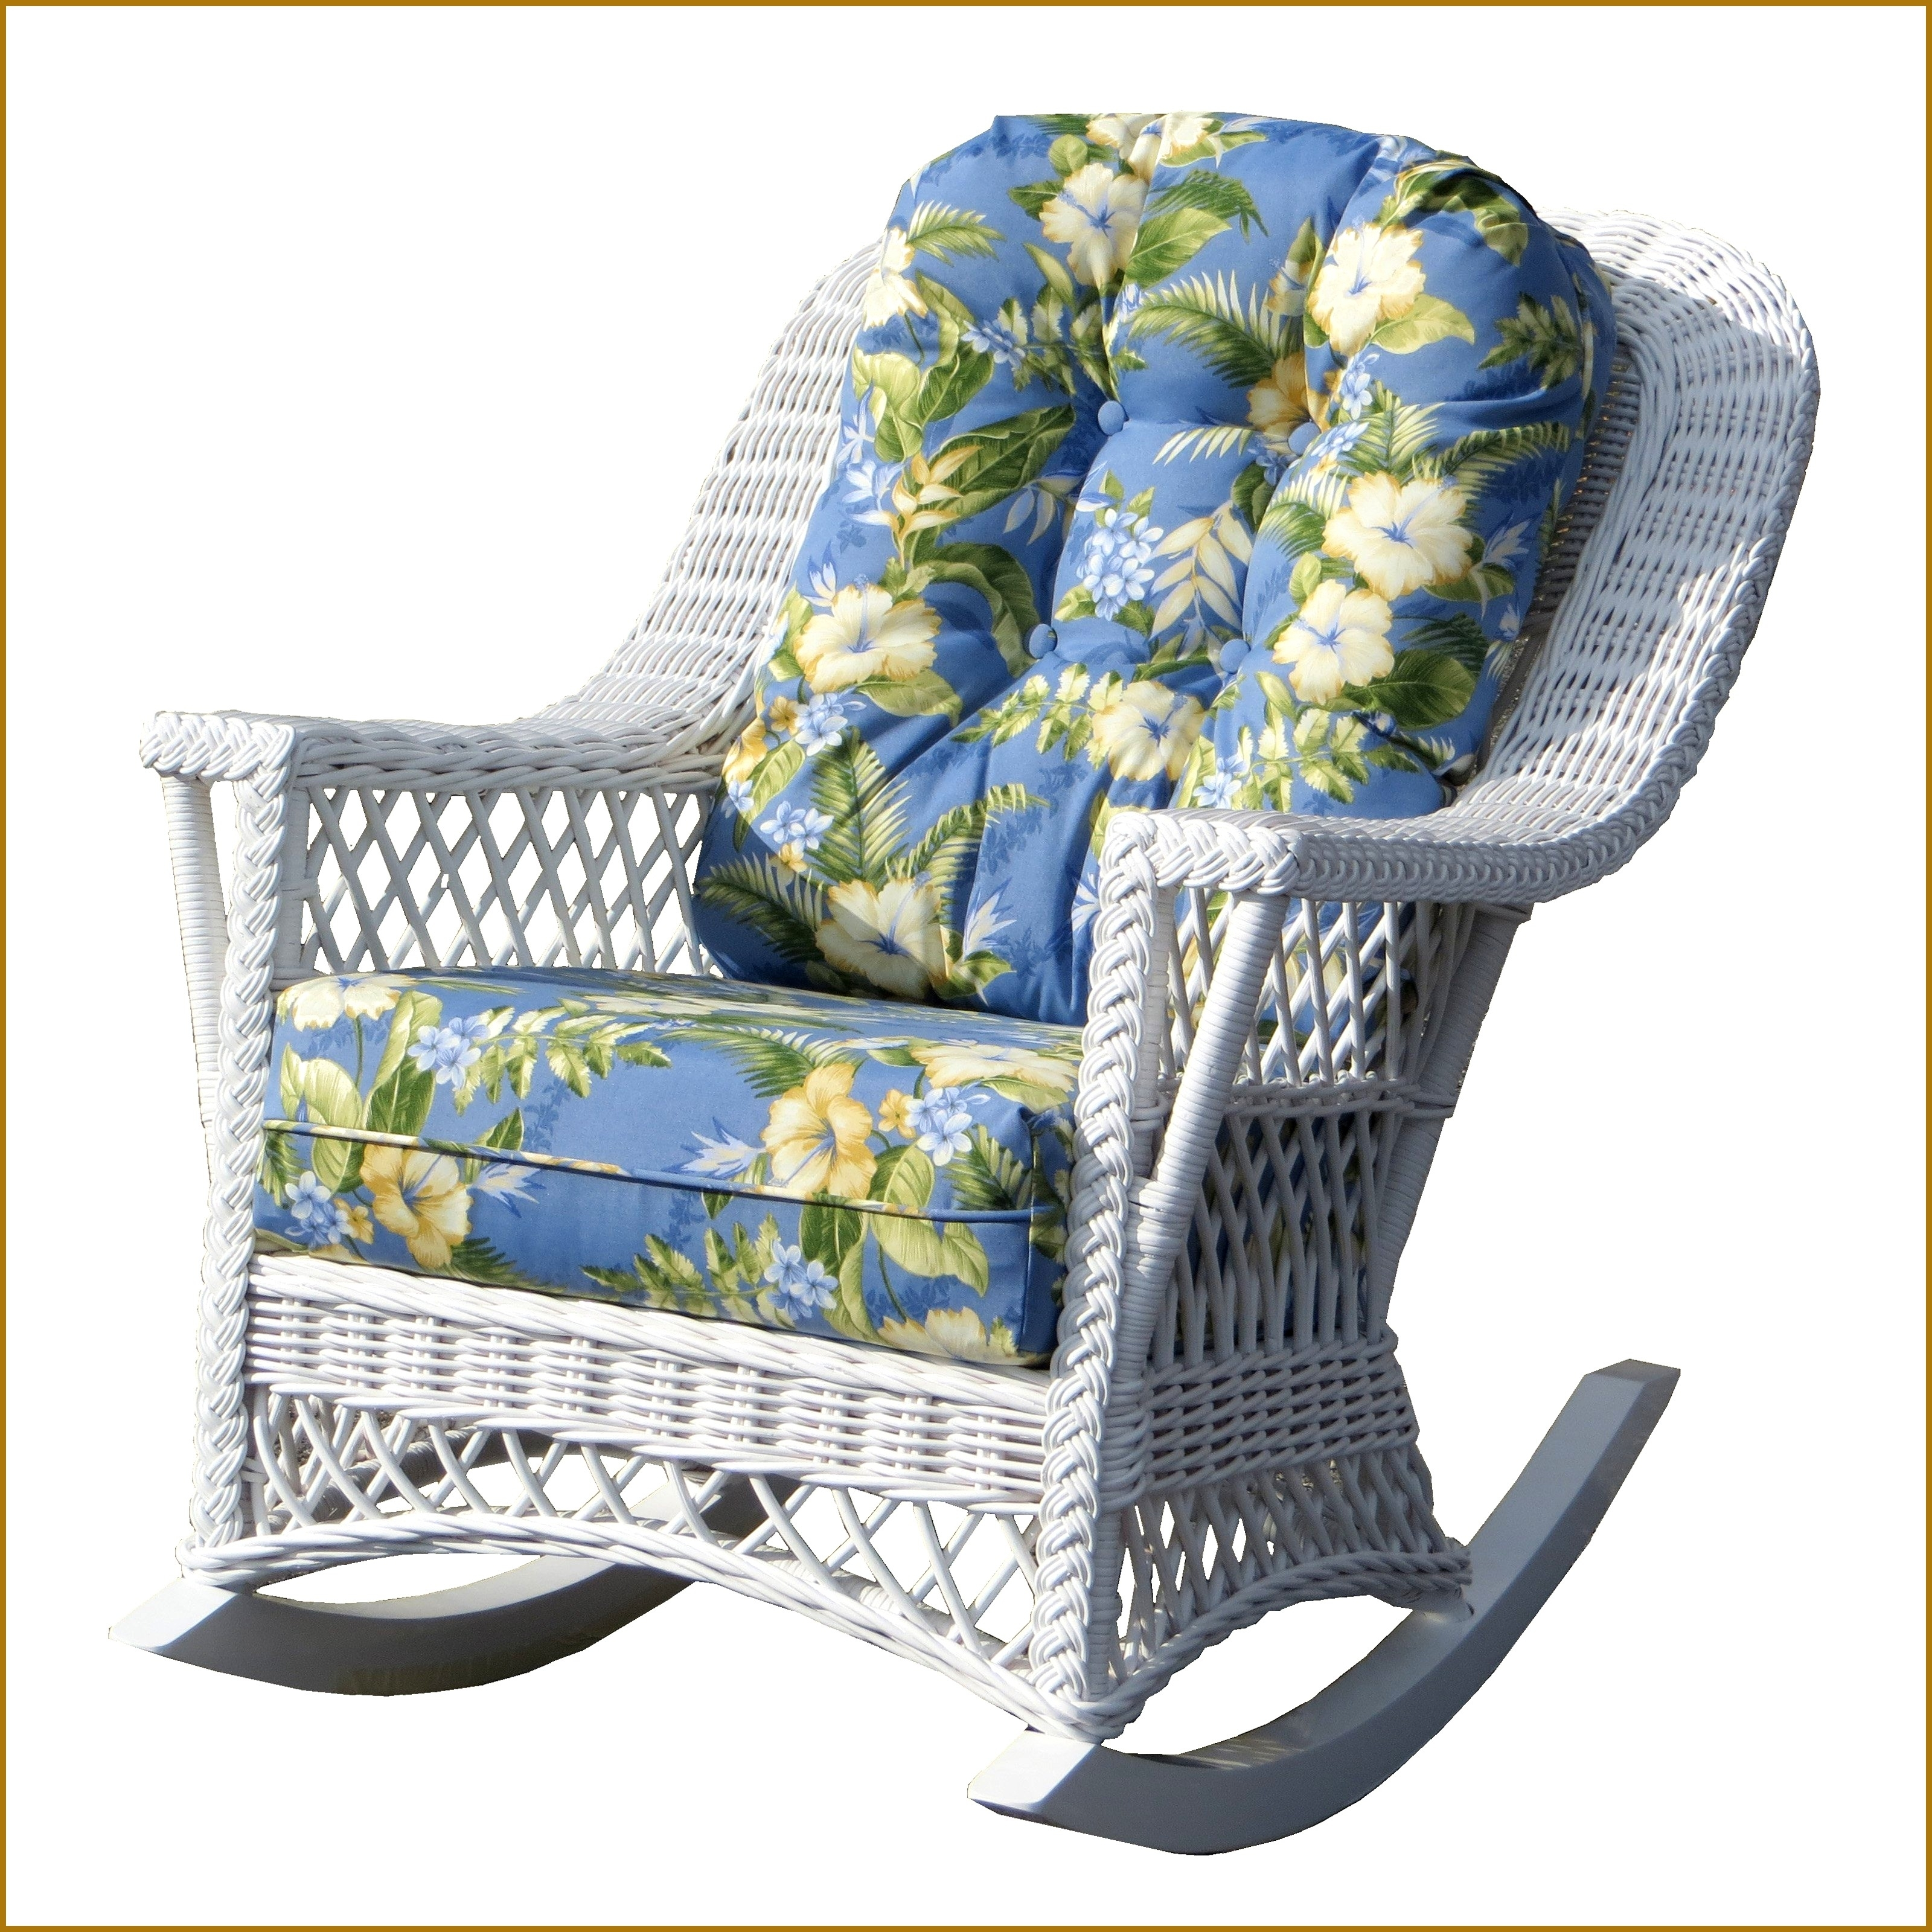 Chair | White Rattan Rocker Amish Glider Gliders Furniture Indoor Within White Wicker Rocking Chair For Nursery (View 8 of 15)